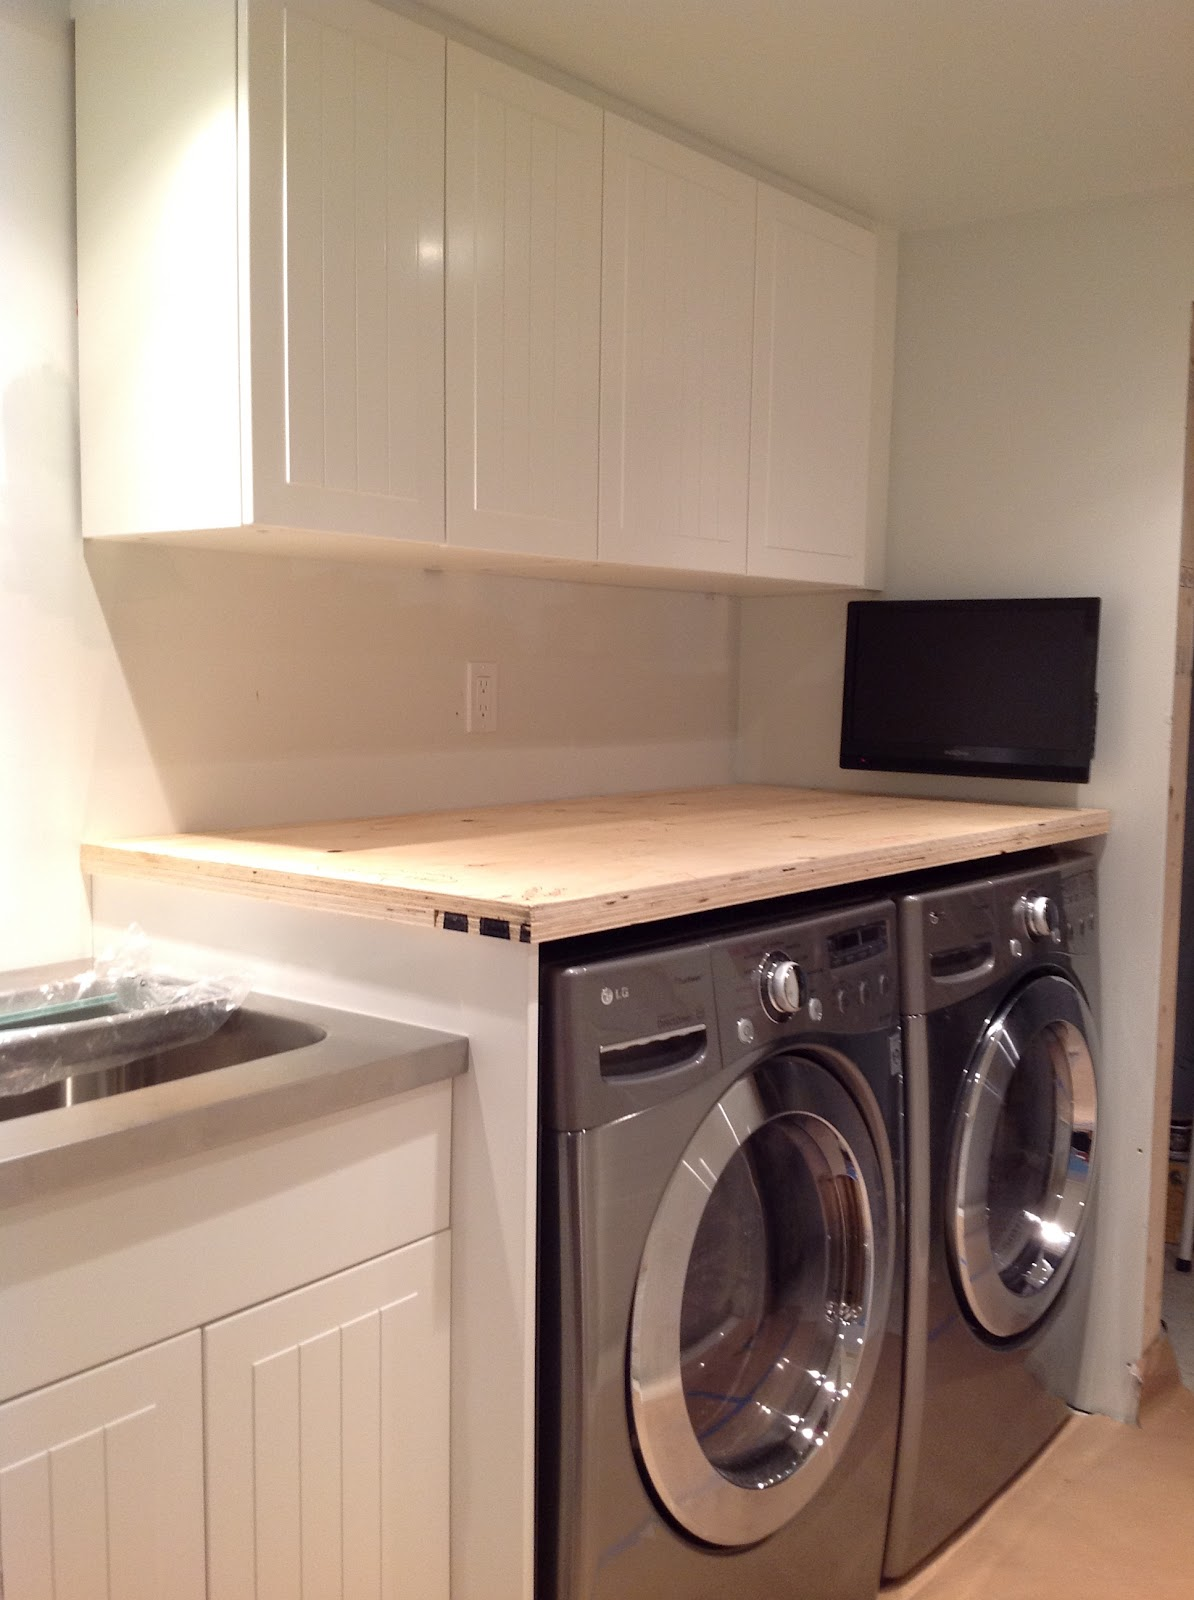 How To Support A Laundry Room Countertop Over A Washer And